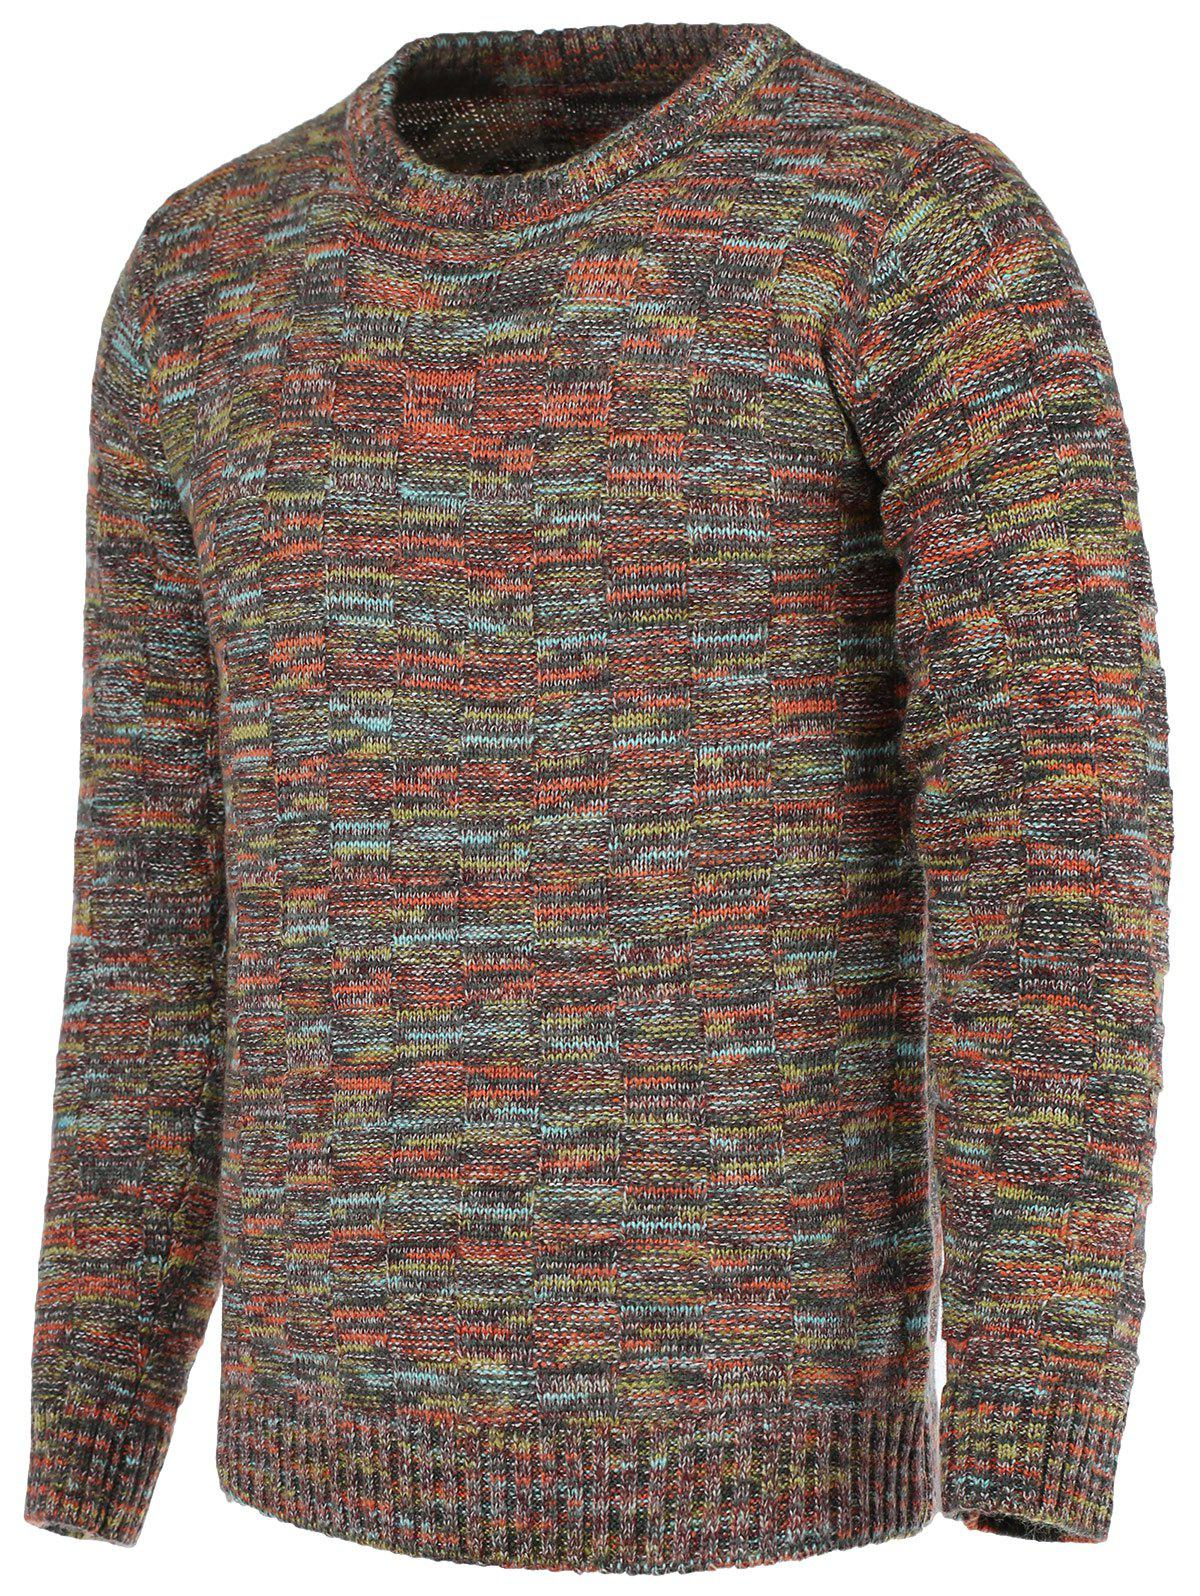 Heathered Plaid Crew Neck Long Sleeve Men's Sweater - COLORMIX XL